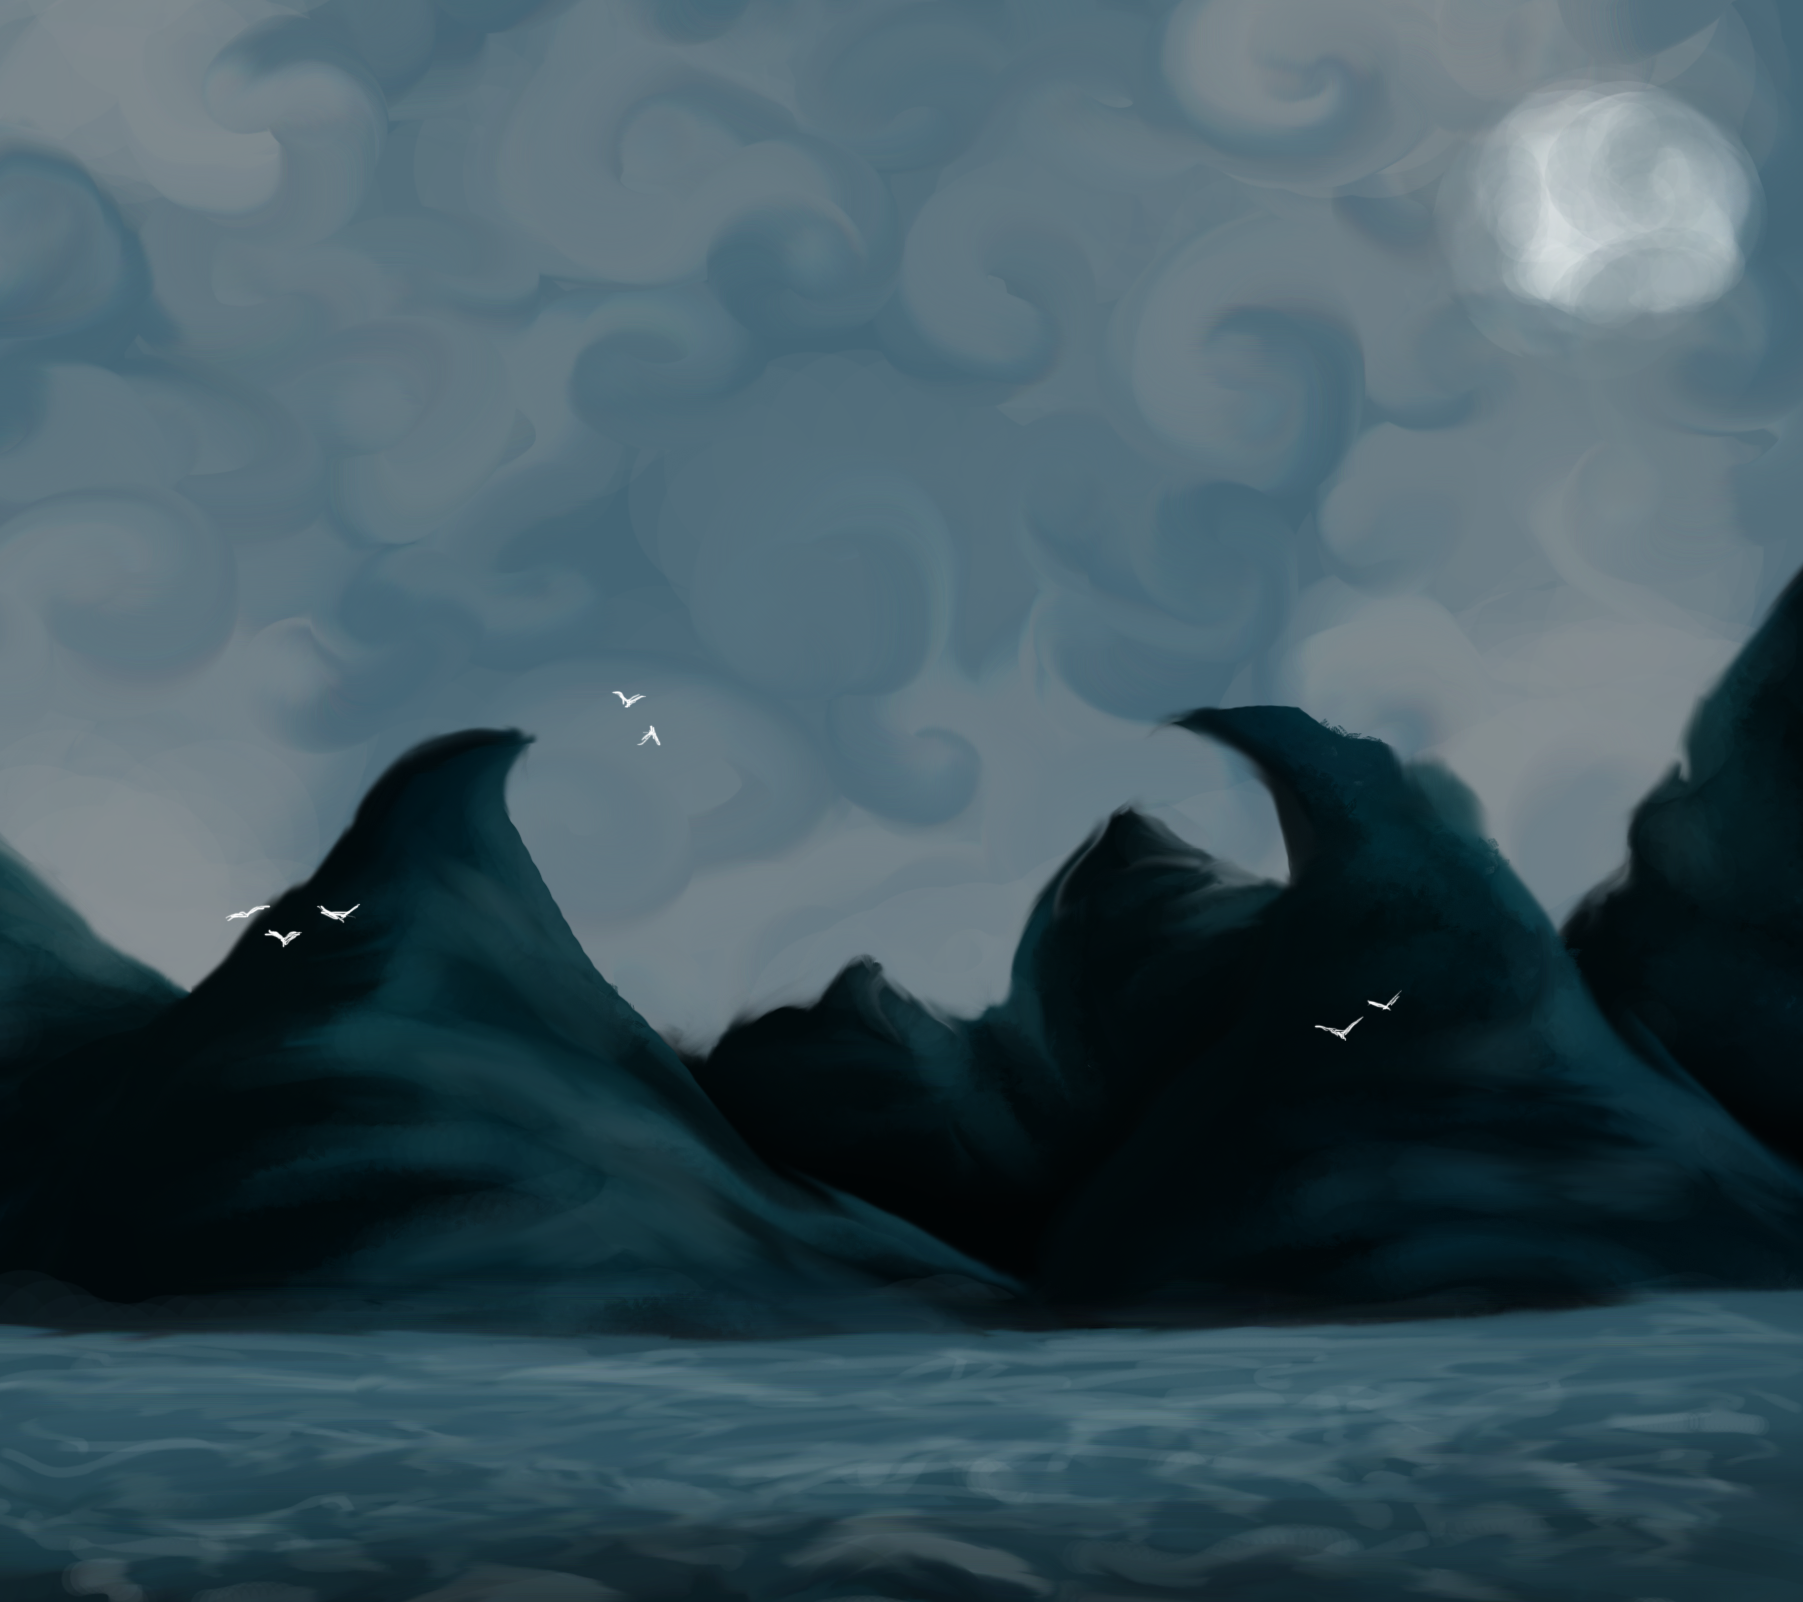 Revisiting Gloomy Galleon